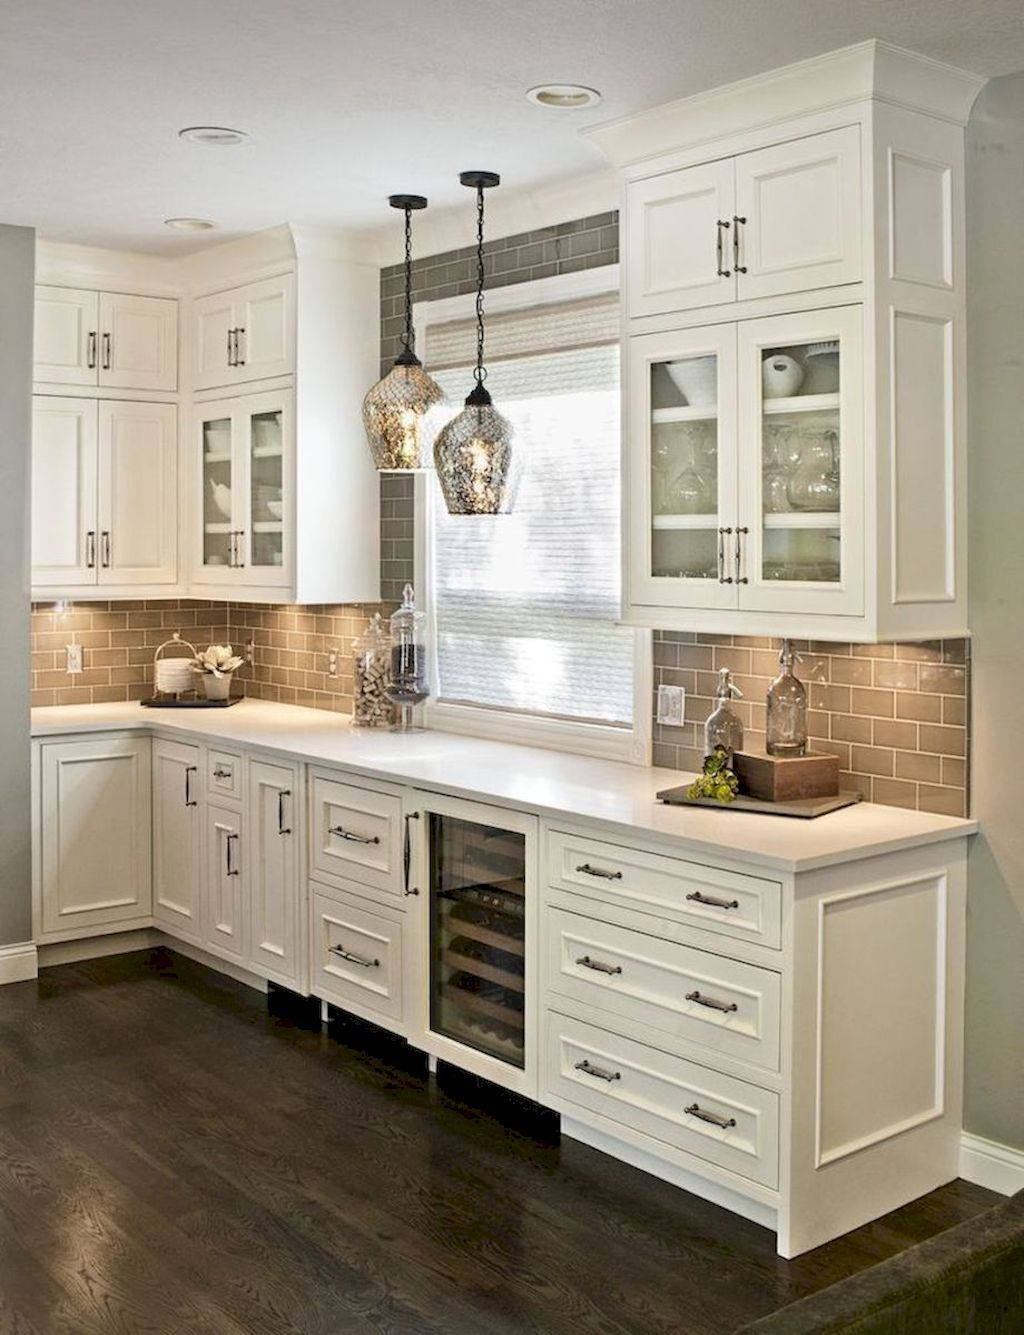 43 Farmhouse Kitchen Backsplash Design Ideas